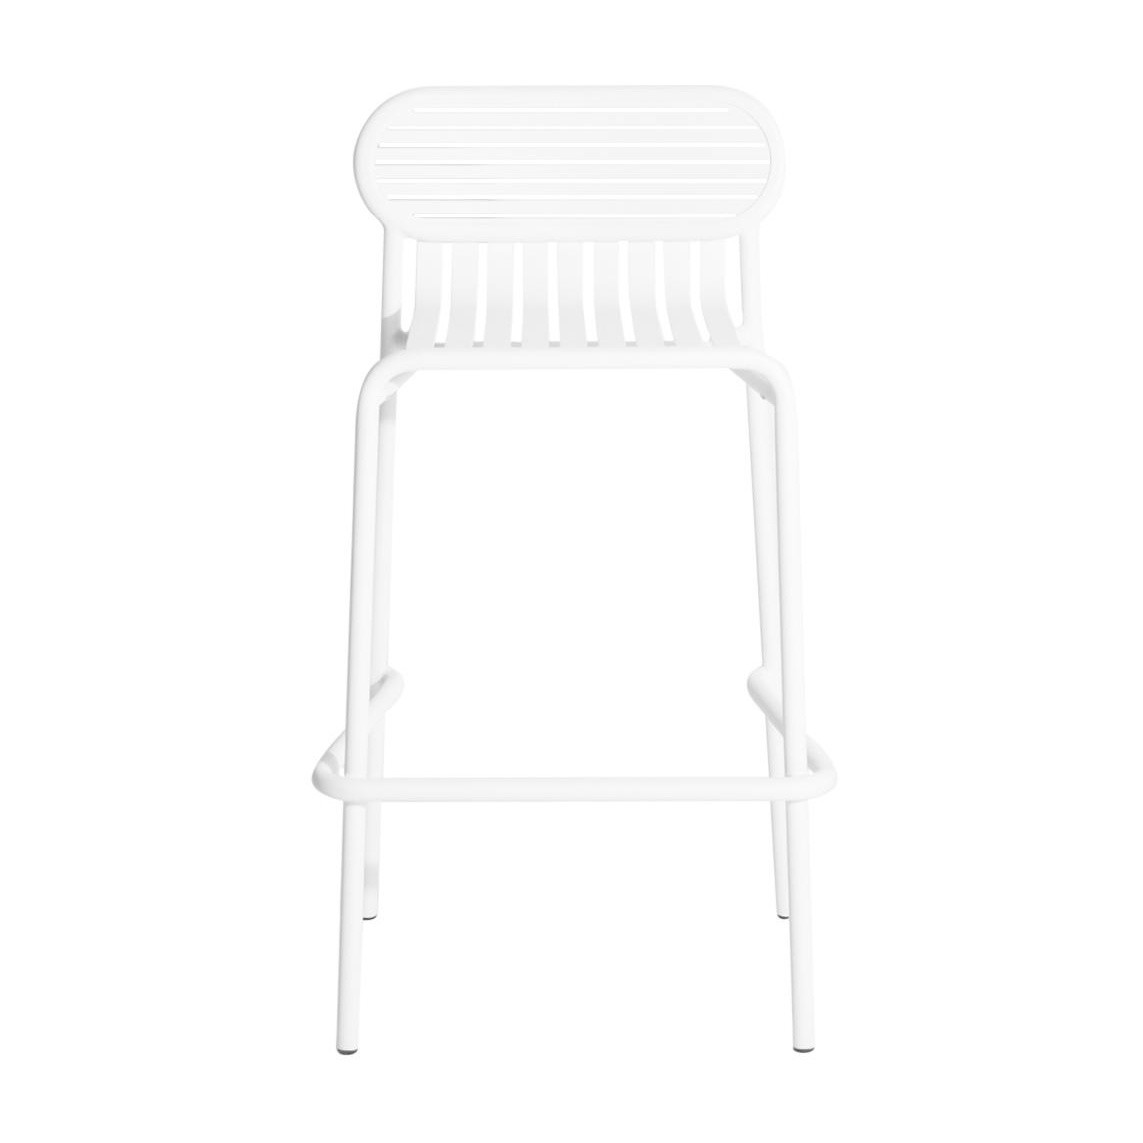 Petite Friture Tabouret De Bar De Jardin Week End 80cm Ambientedirect